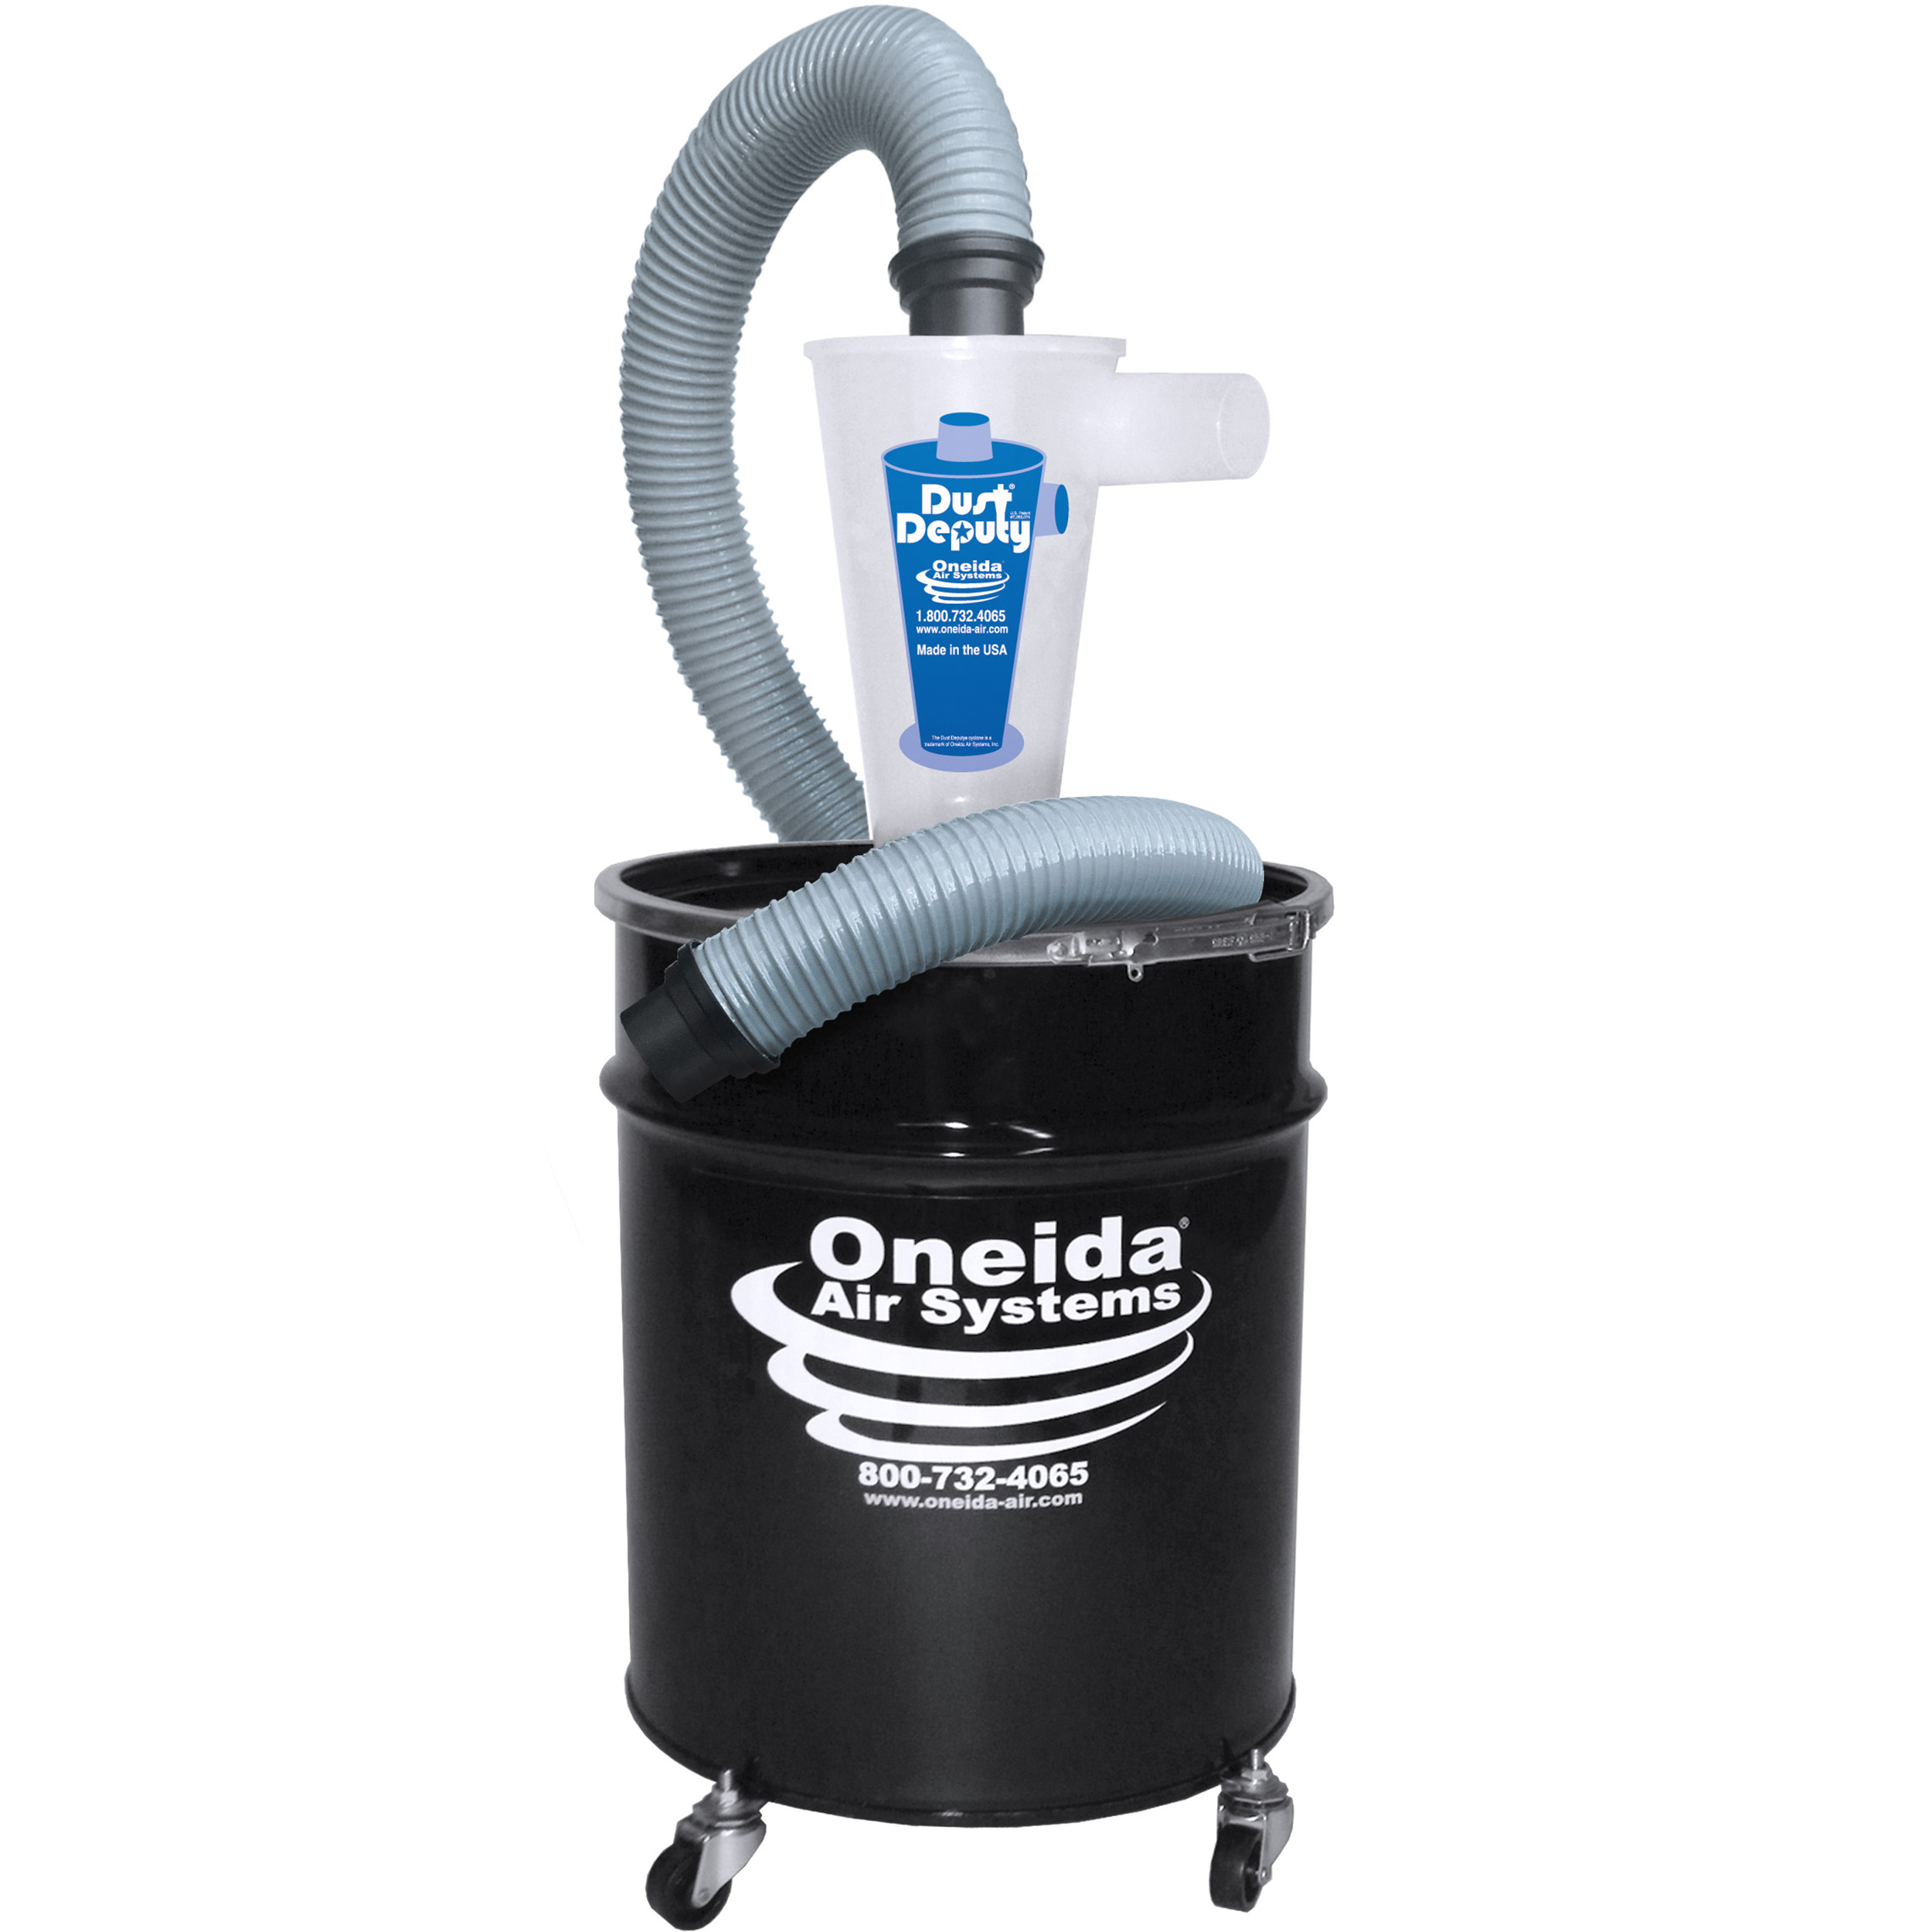 Deluxe Dust Deputy with 10-Gallon Drum